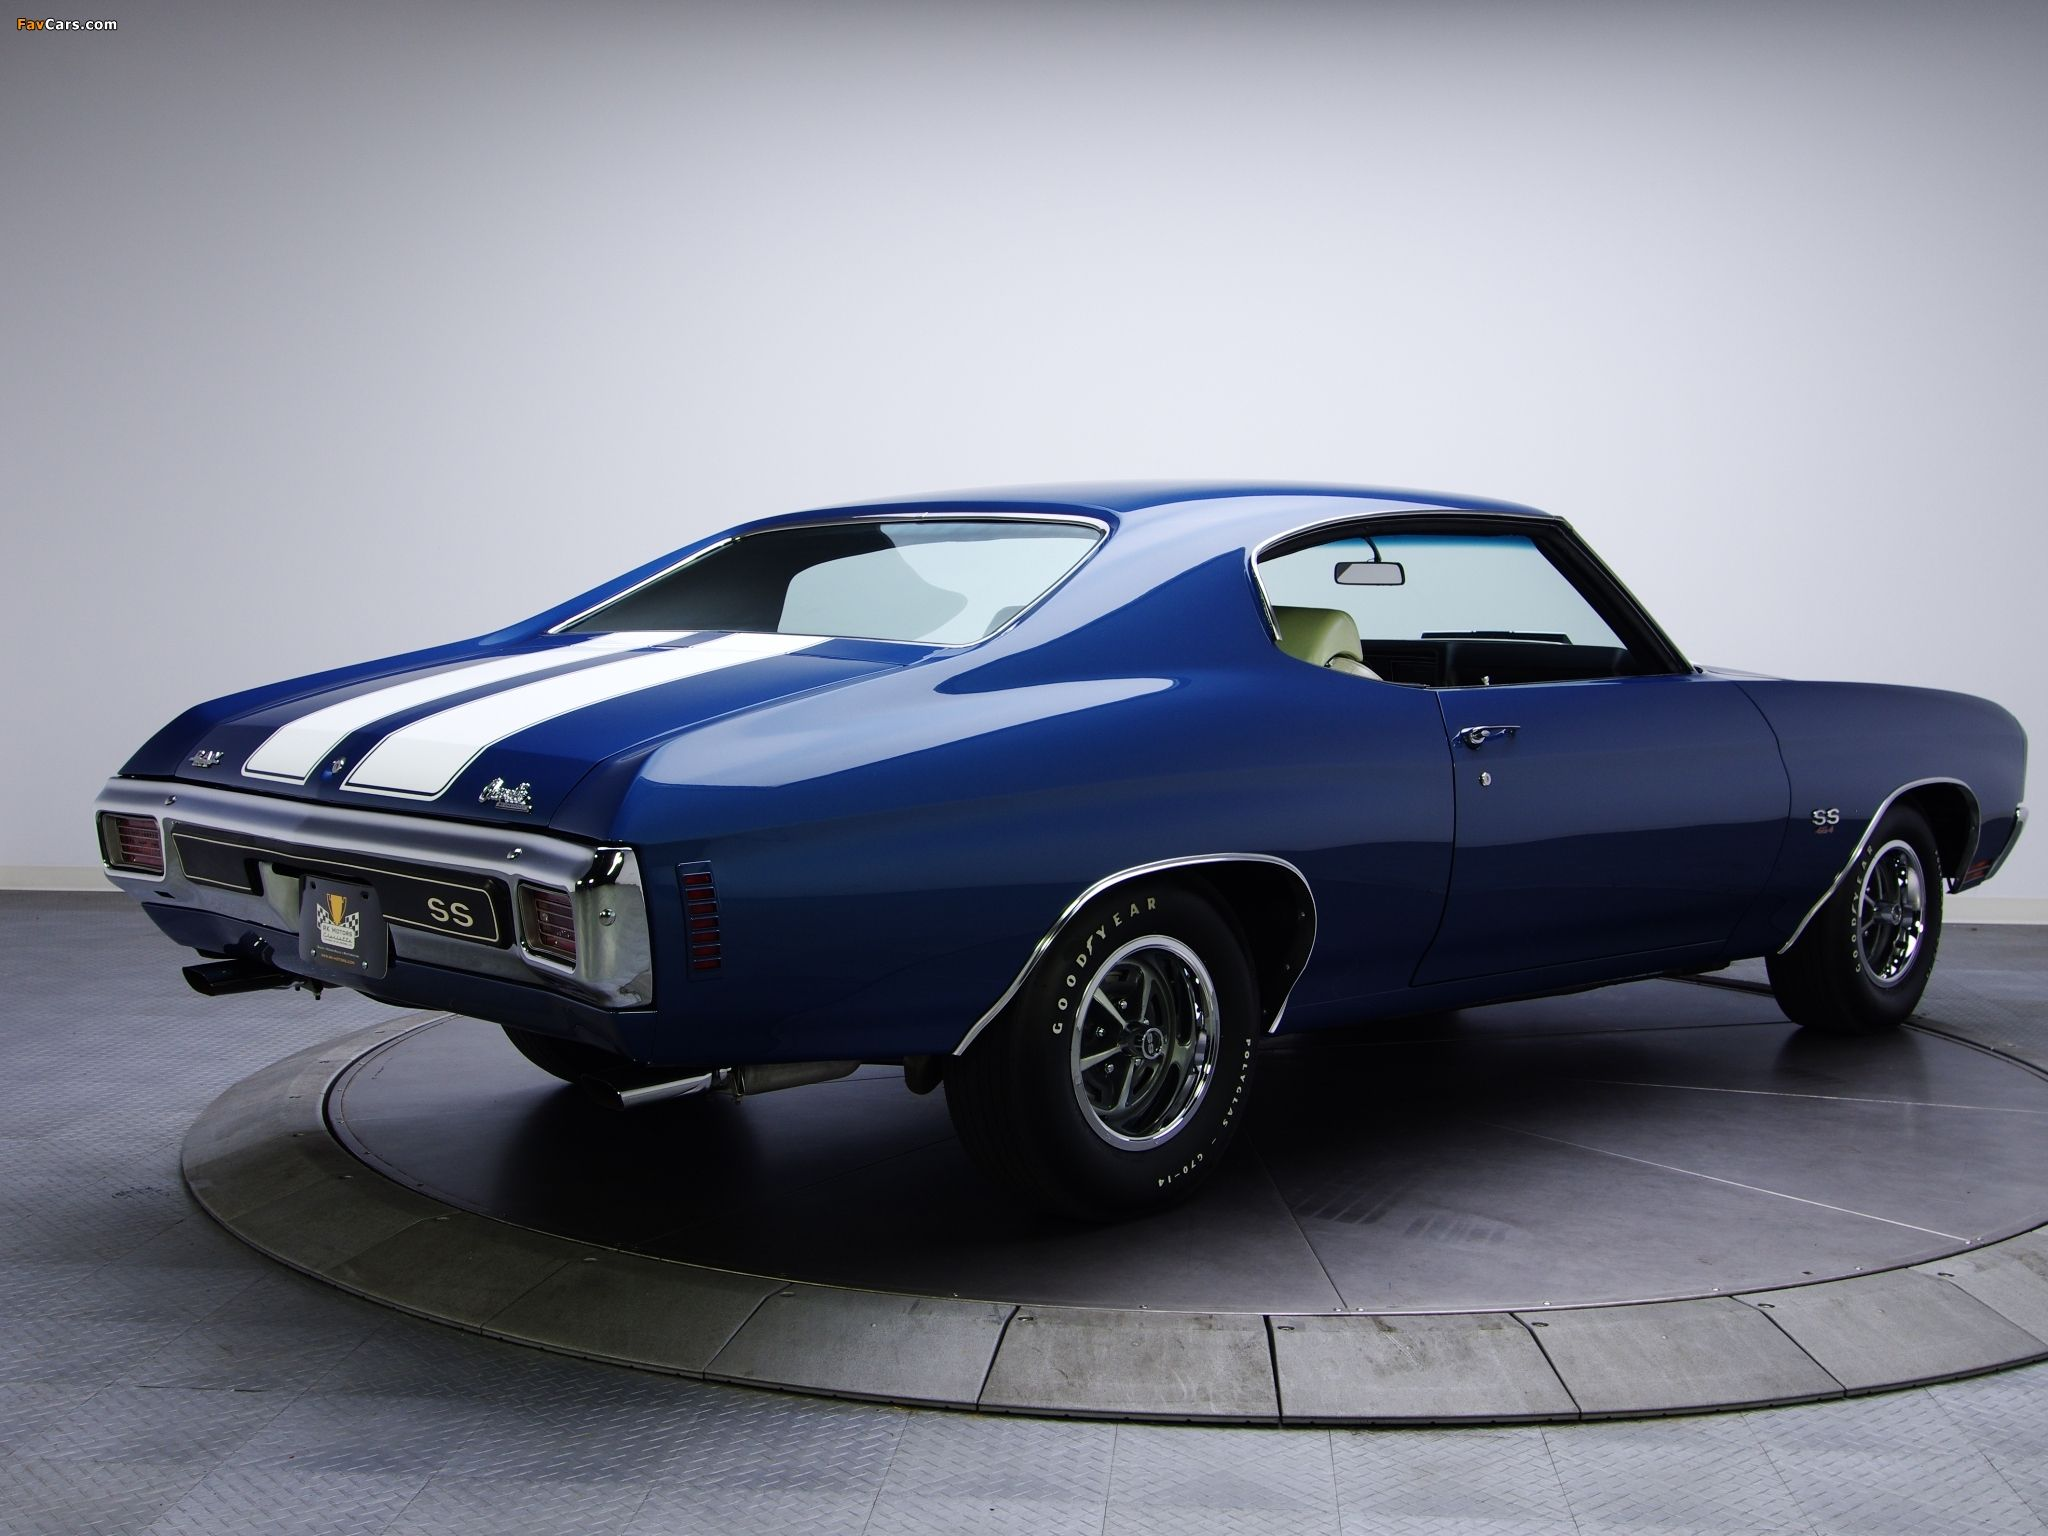 chevelle ss 454 - Google Search